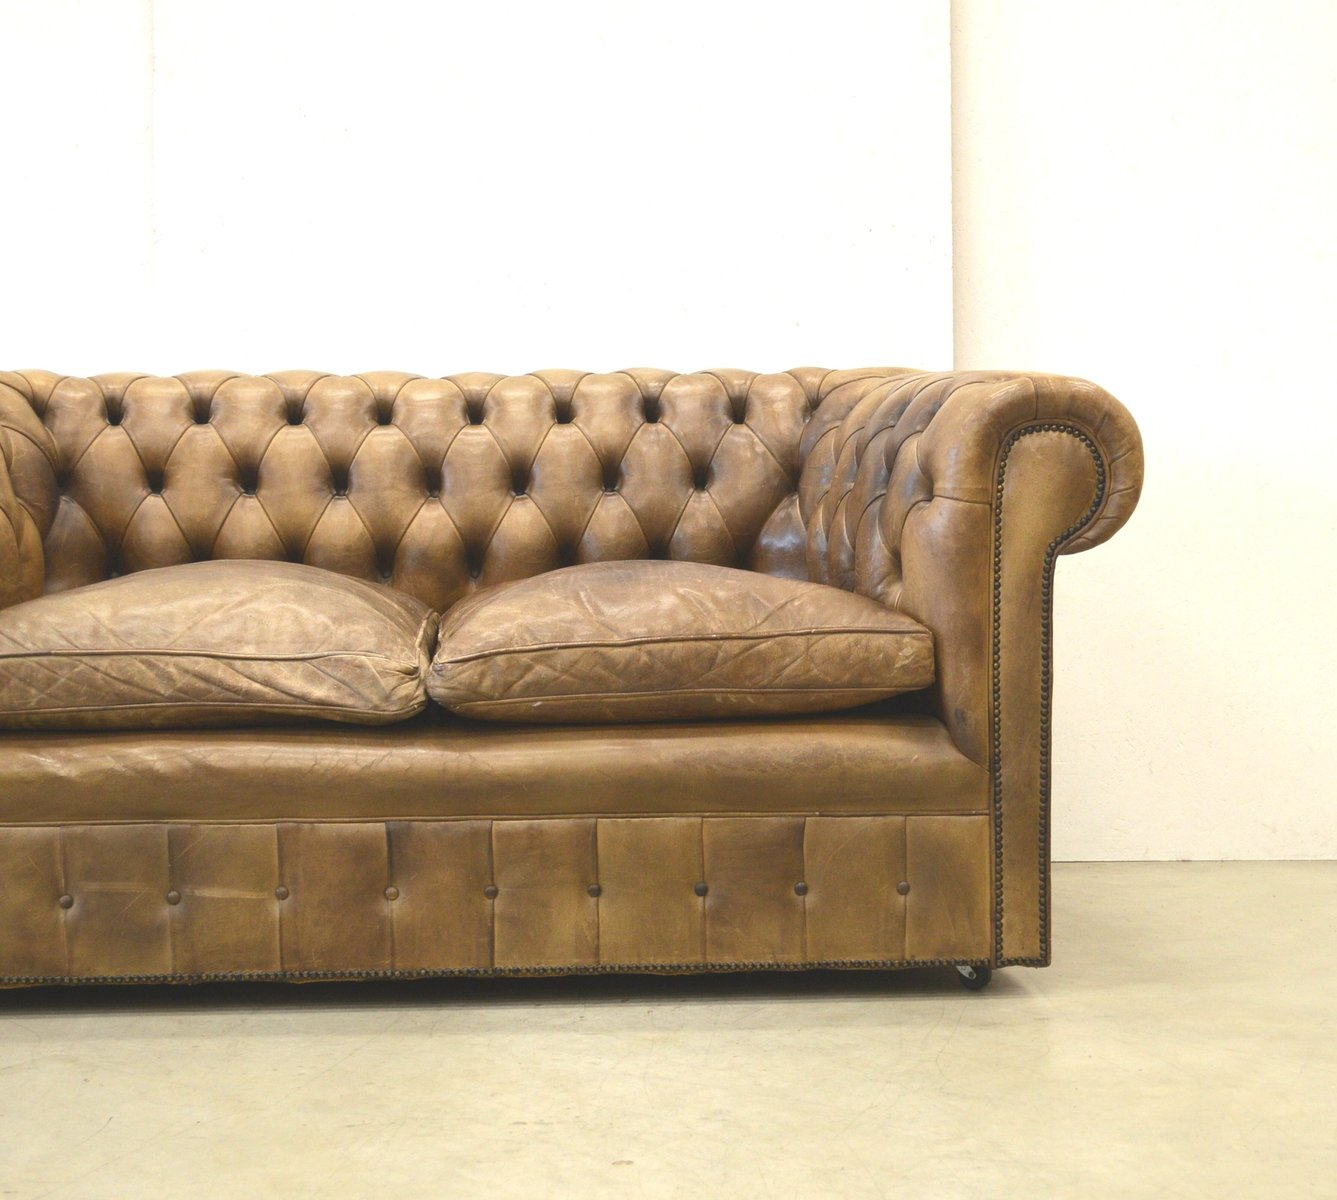 English Brown Leather Chesterfield Two Seater Sofa, 1960s for sale at Pamono